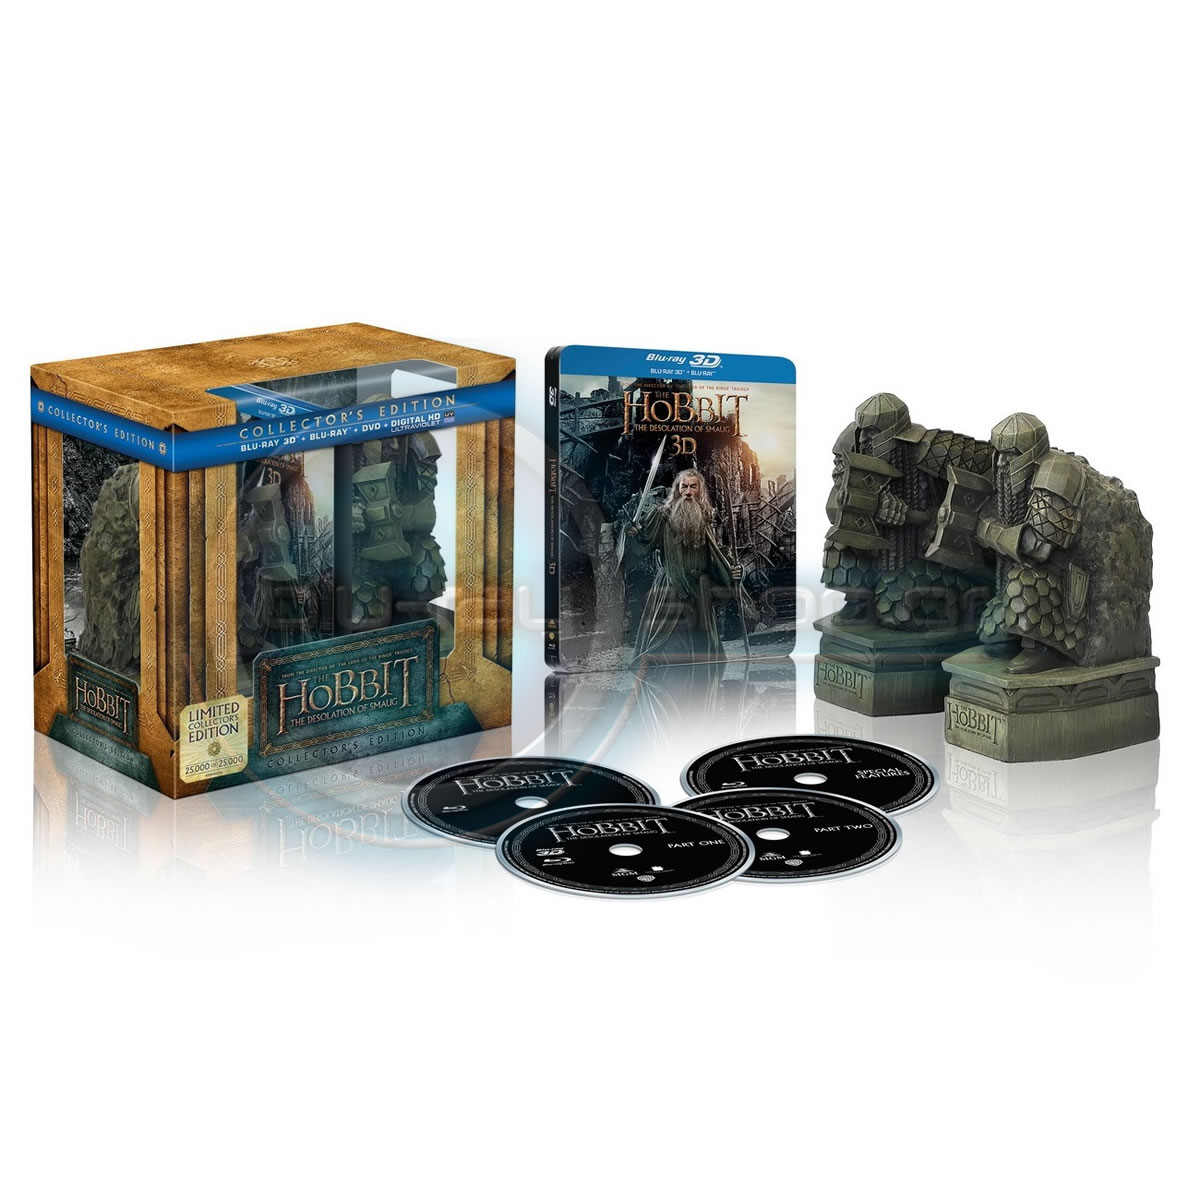 THE HOBBIT: THE DESOLATION OF SMAUG 3D Limited Collector's Edition Steelbook + BOOKENDS [Imported] (2 BLU-RAY 3D + 2 BLU-RAY)